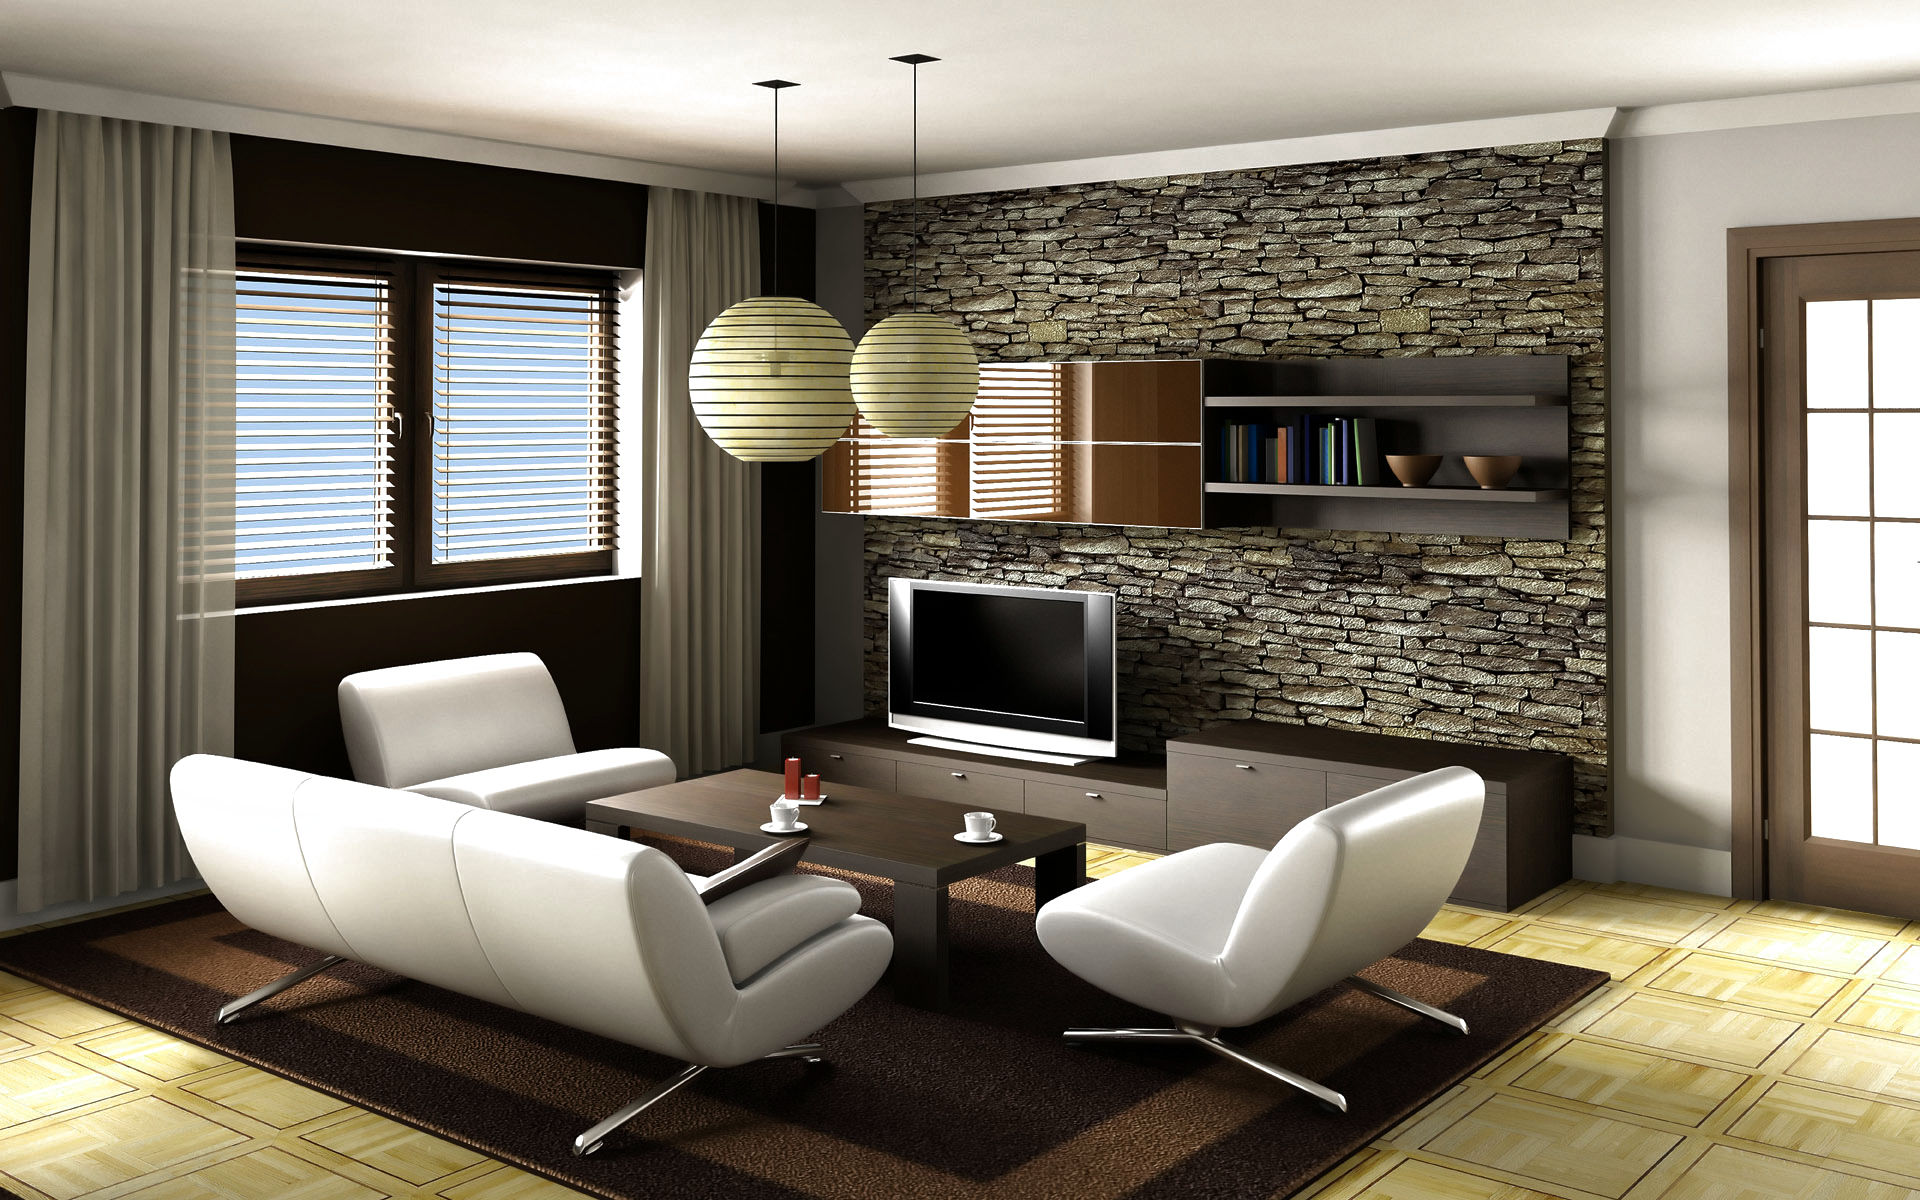 16 modern living room furniture ideas design hgnv com for Living room modern furniture